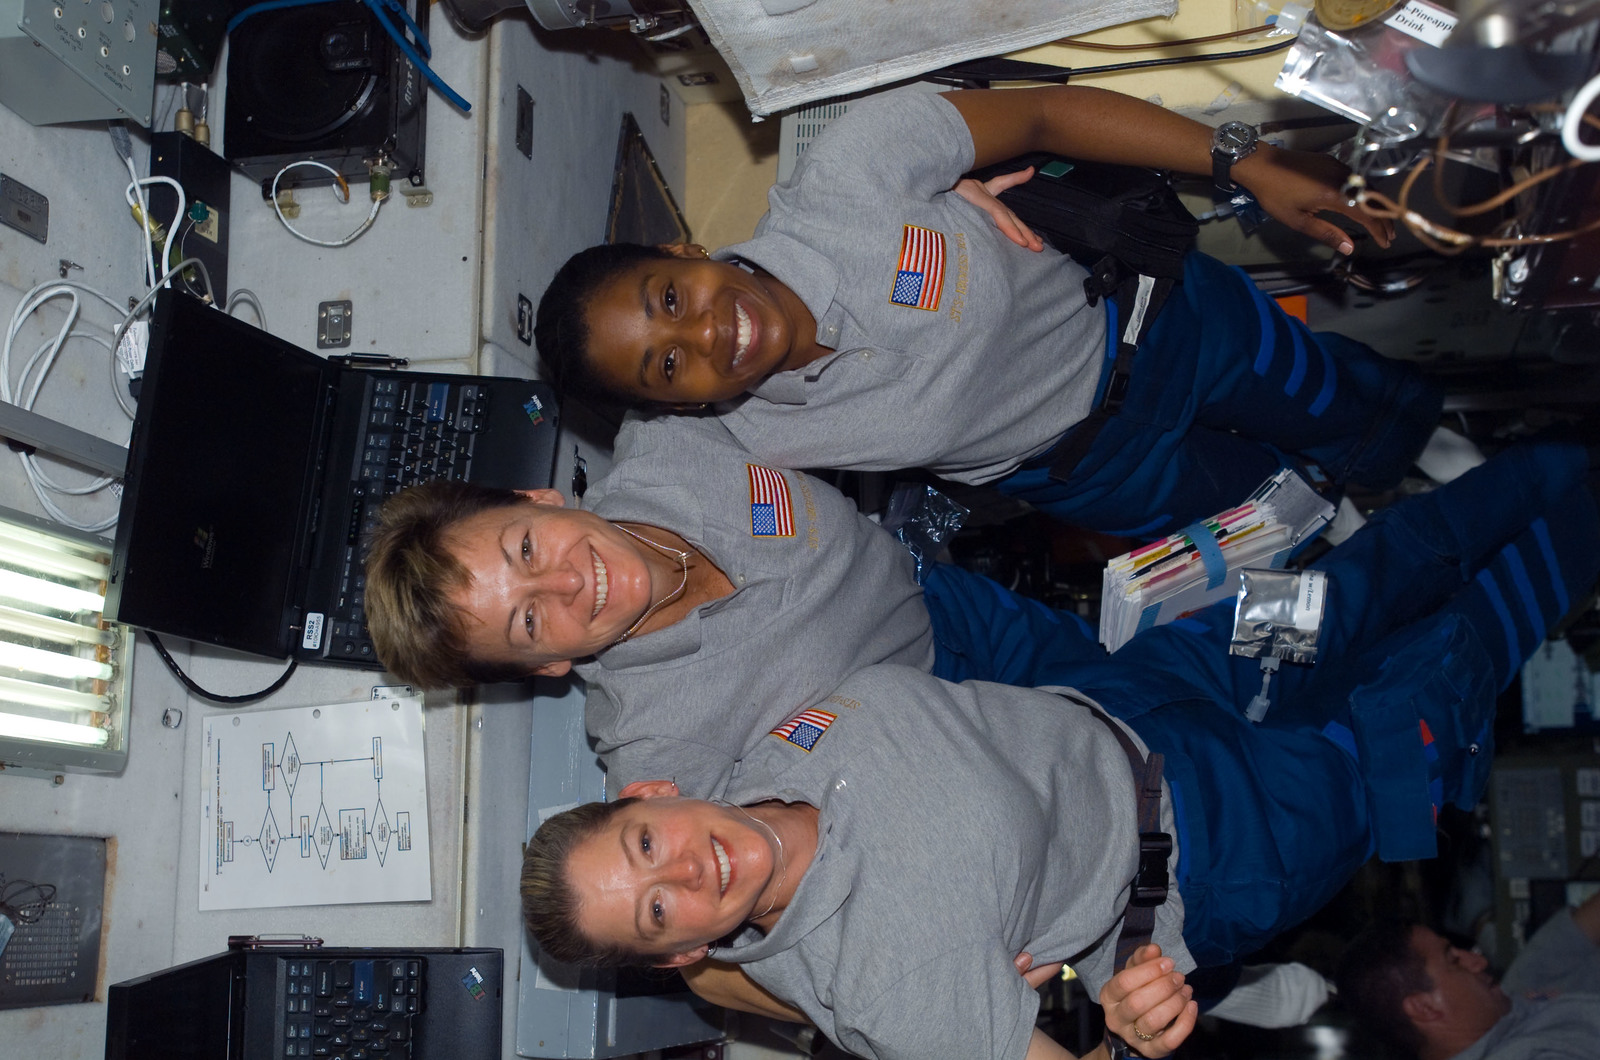 S120E008338 - STS-120 - STS-120 and Expedition 16 crew in Zvezda module